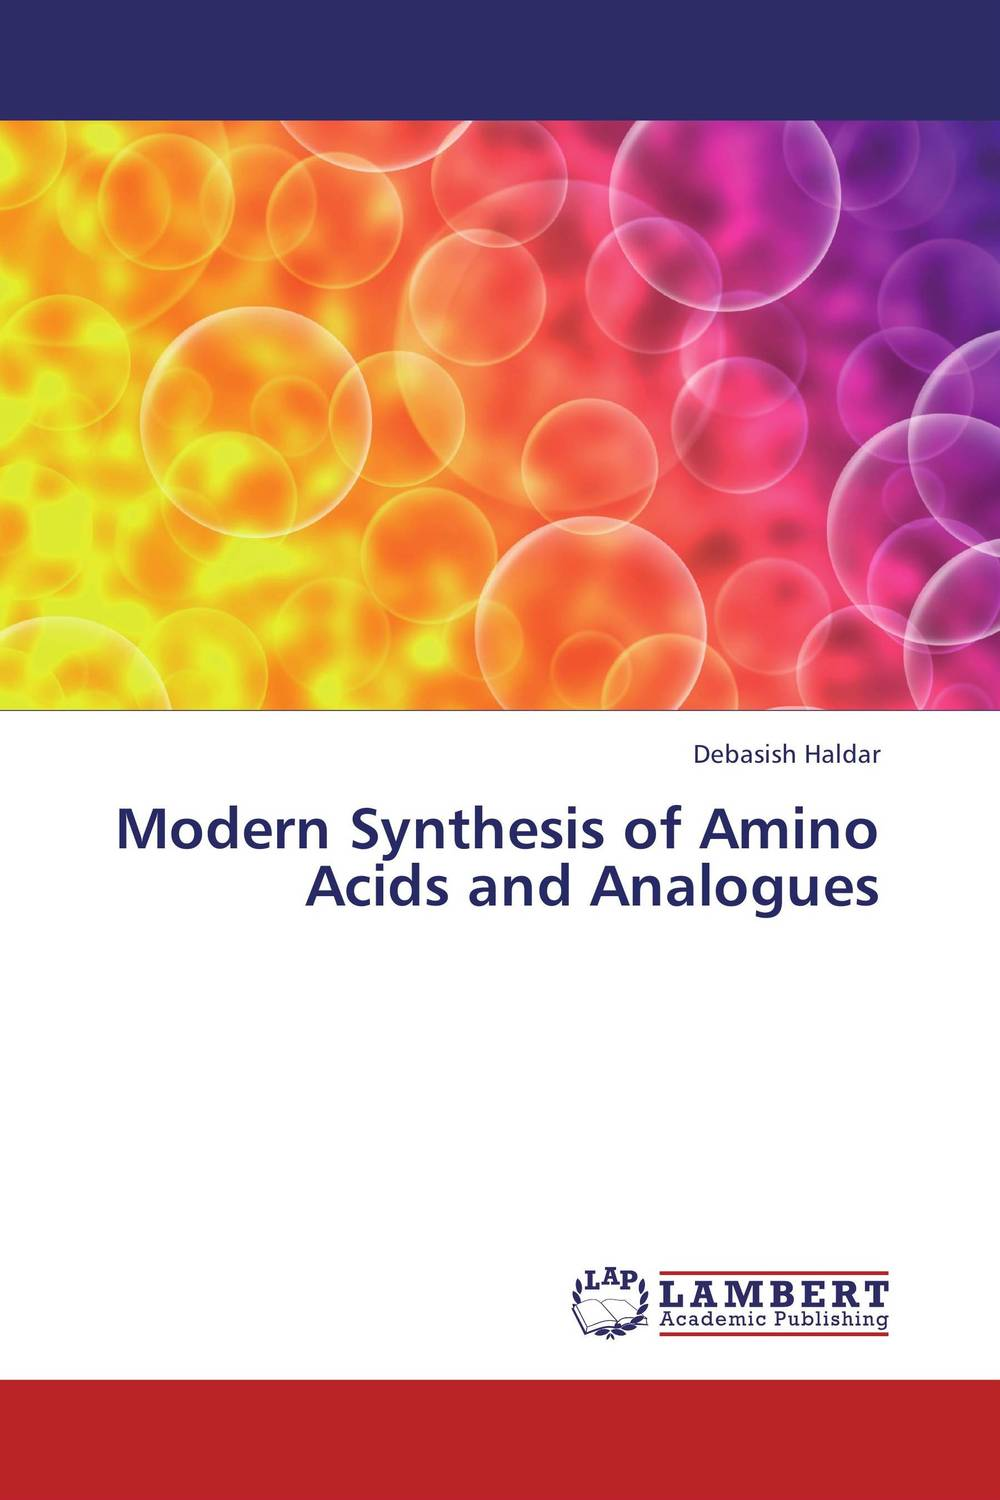 Modern Synthesis of Amino Acids and Analogues dennis hall g boronic acids preparation and applications in organic synthesis medicine and materials